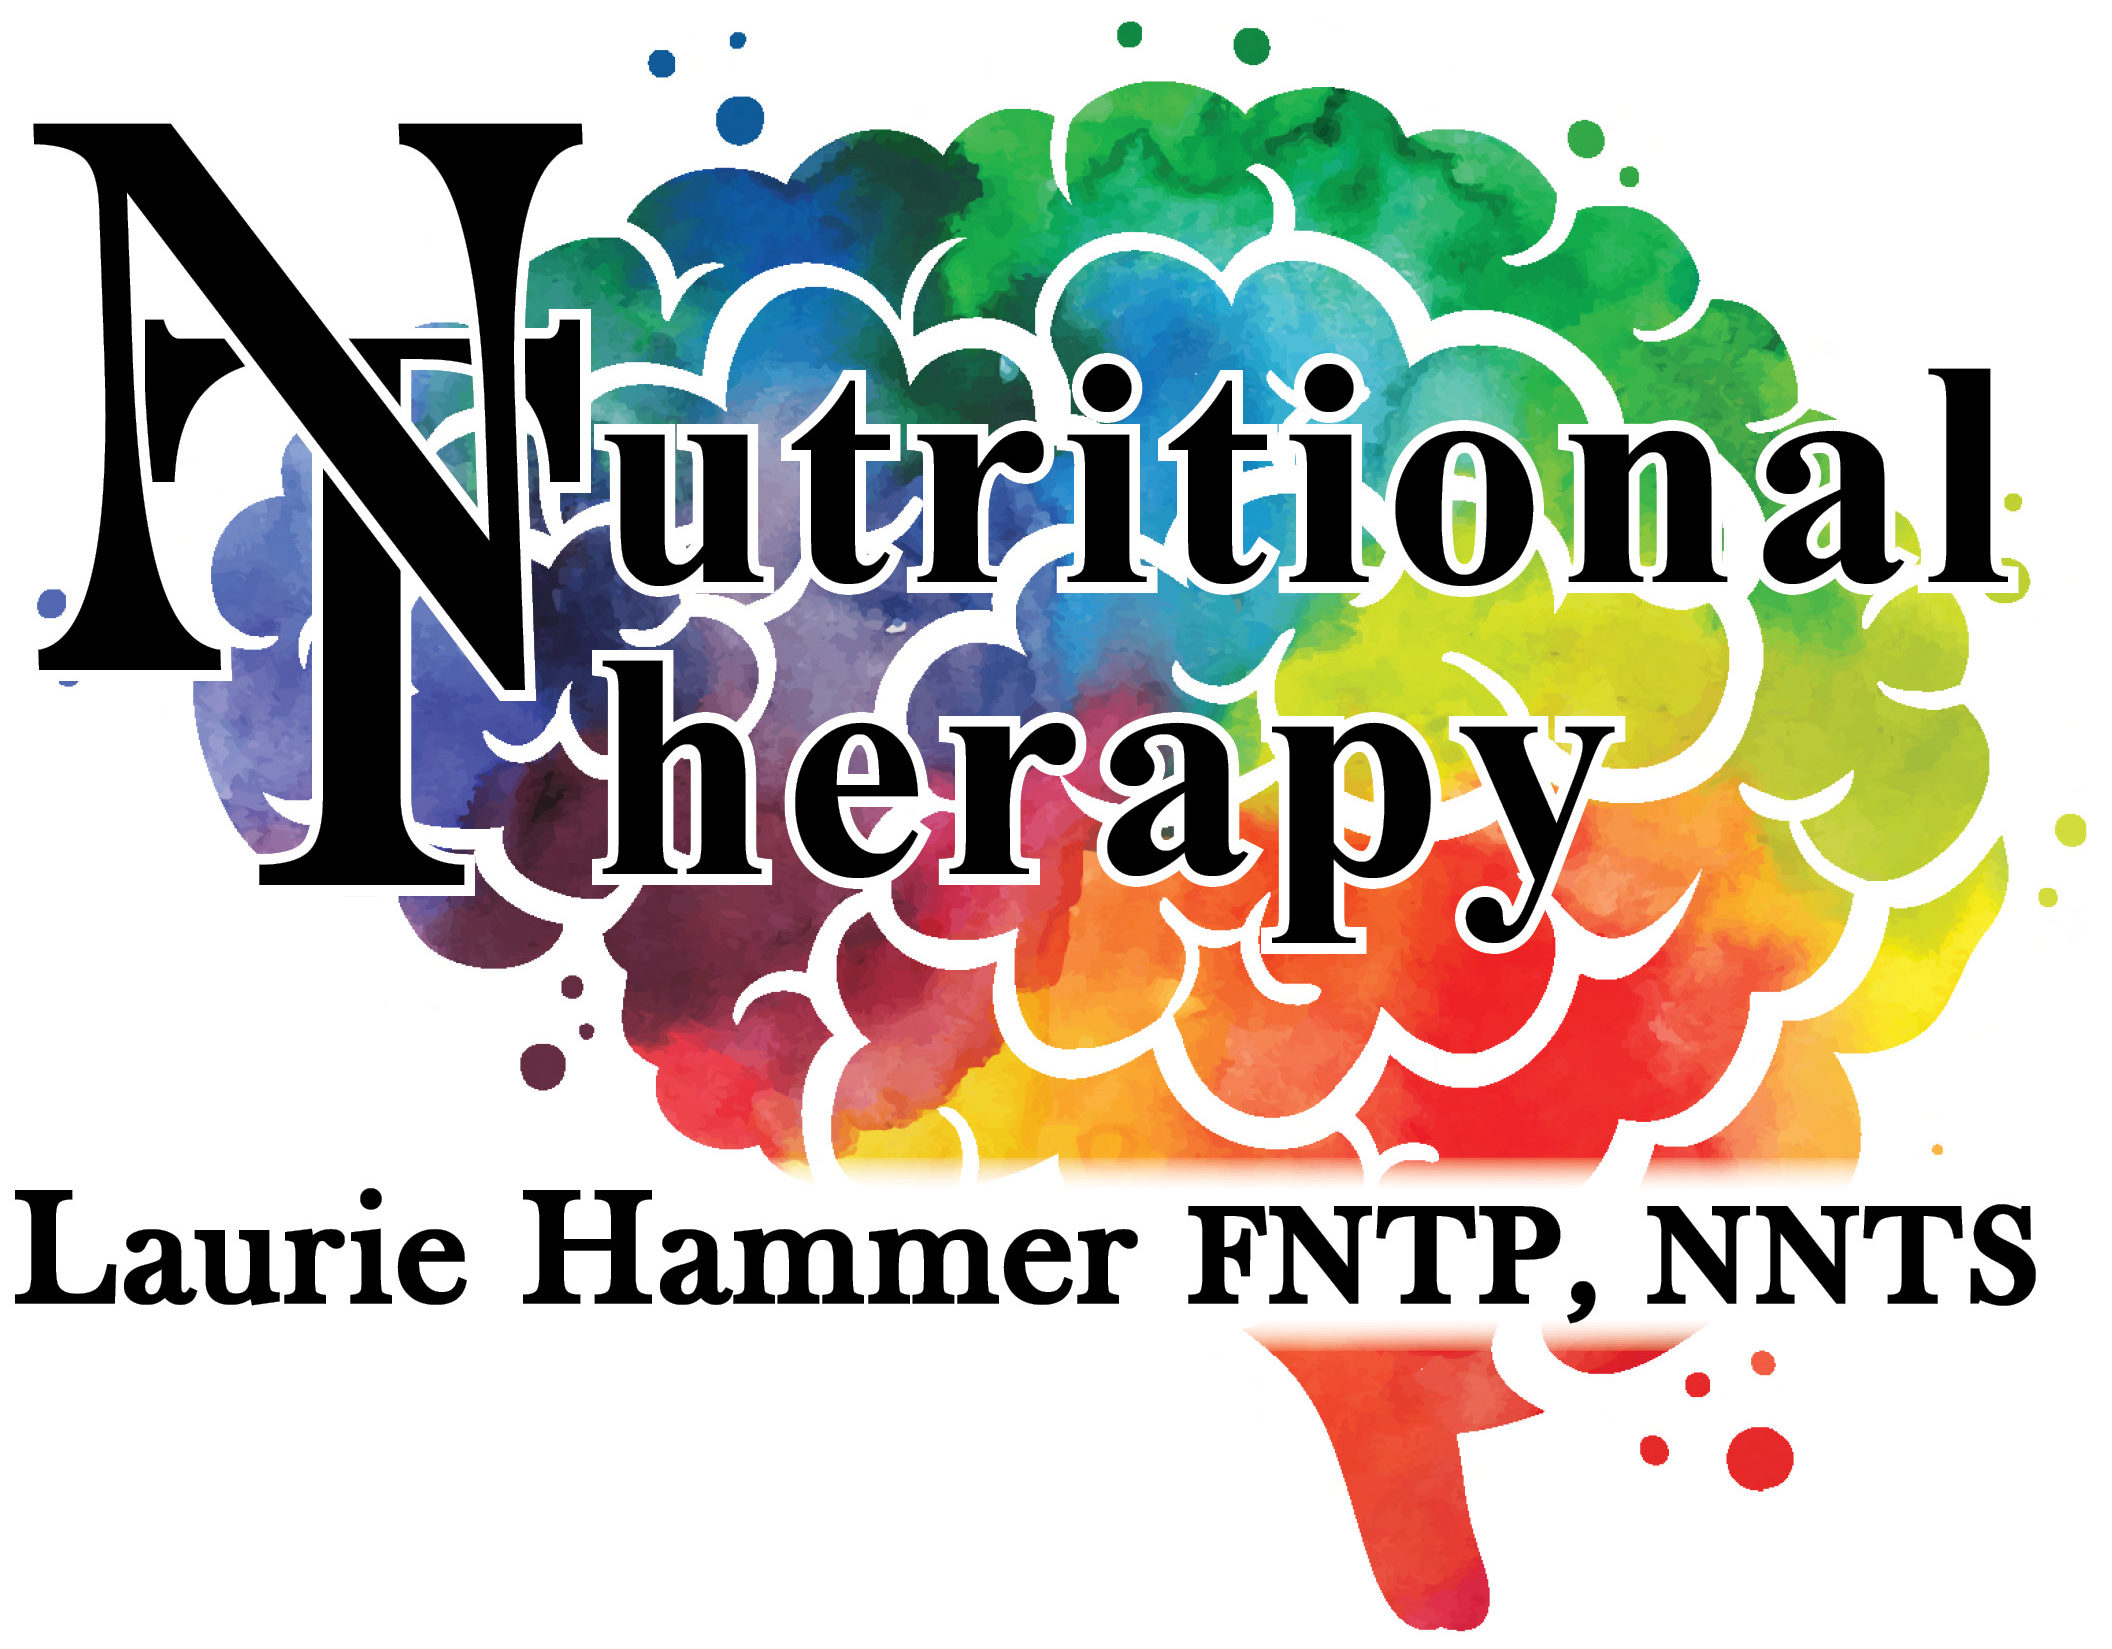 Laurie Hammer, NTP, NNTS